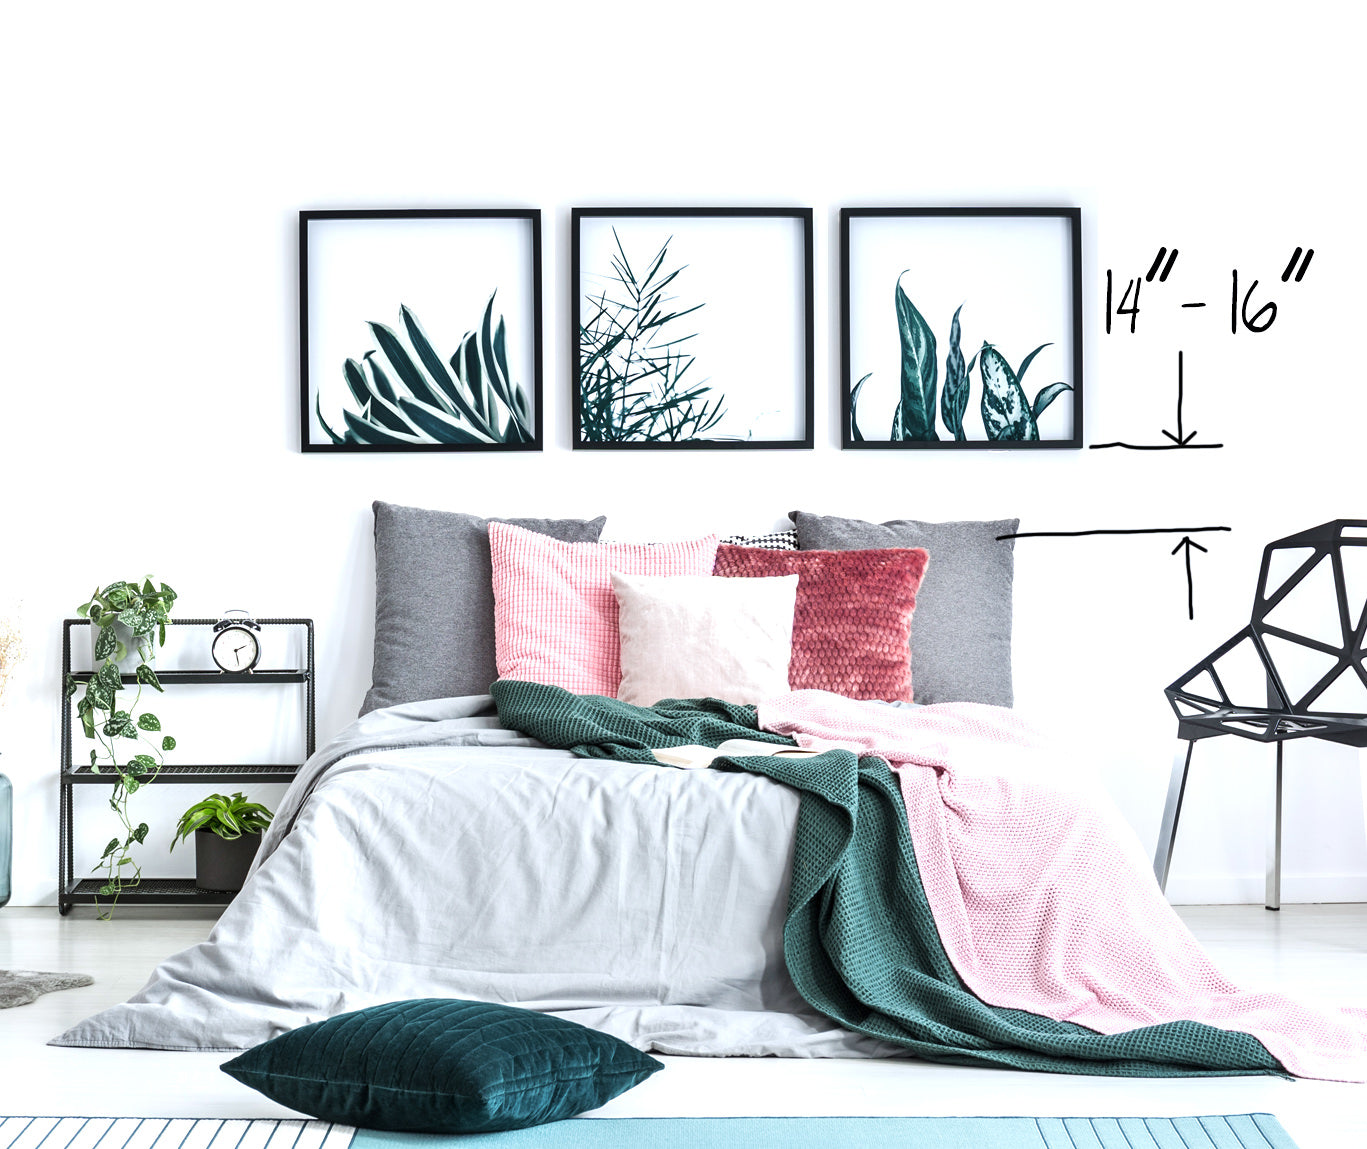 Hanging artwork above a bed with no headboard